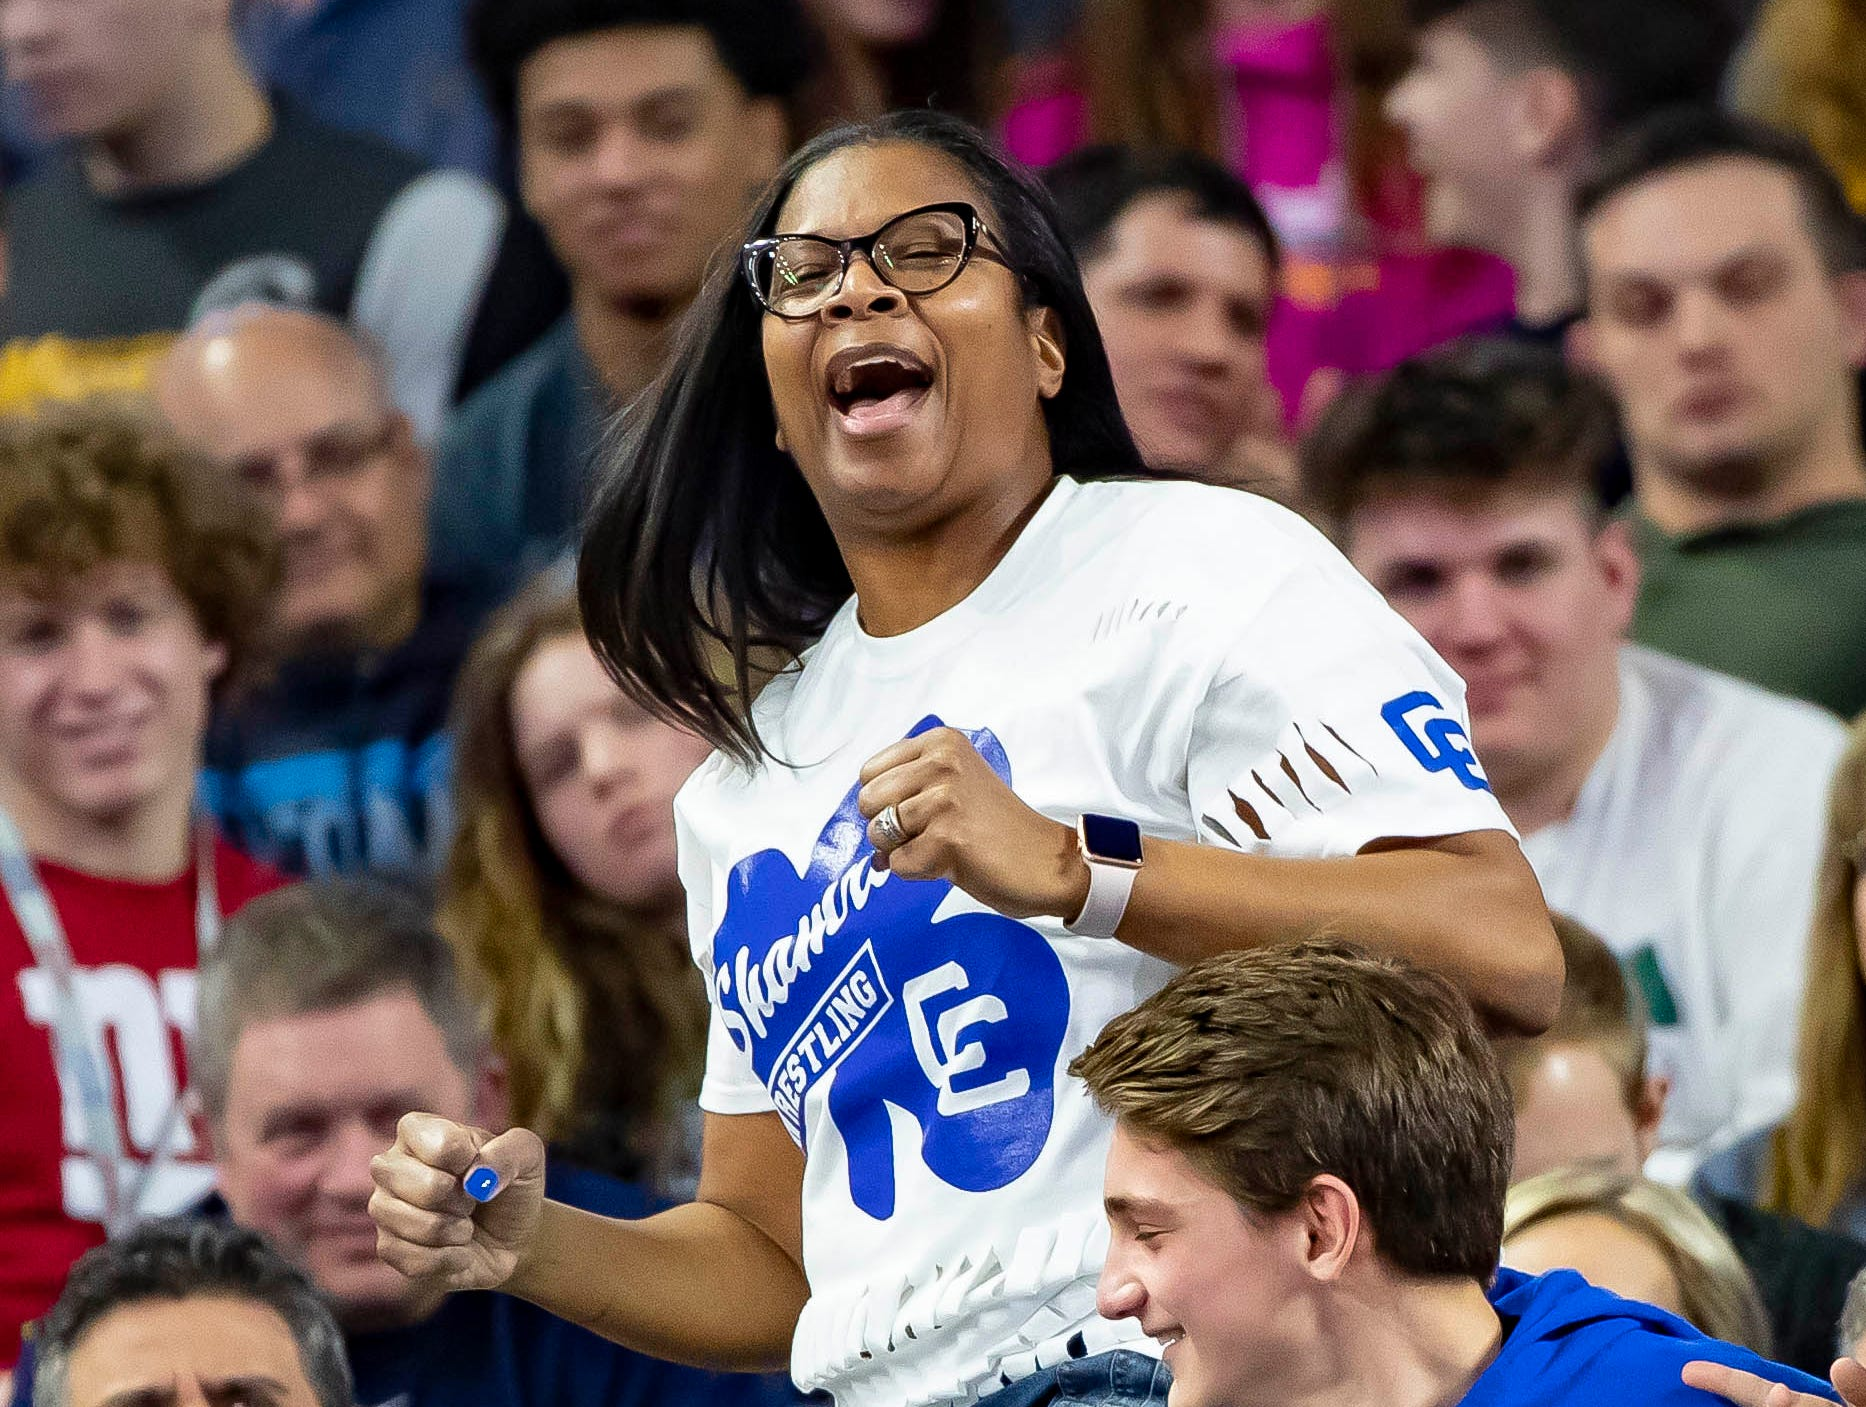 Izetta Davenport, the mother of Kevon Davenport of Detroit Catholic Central, cheers for her son after he defeated Vic Schoenherr of Bay City Western and won his 4th straight state championship.